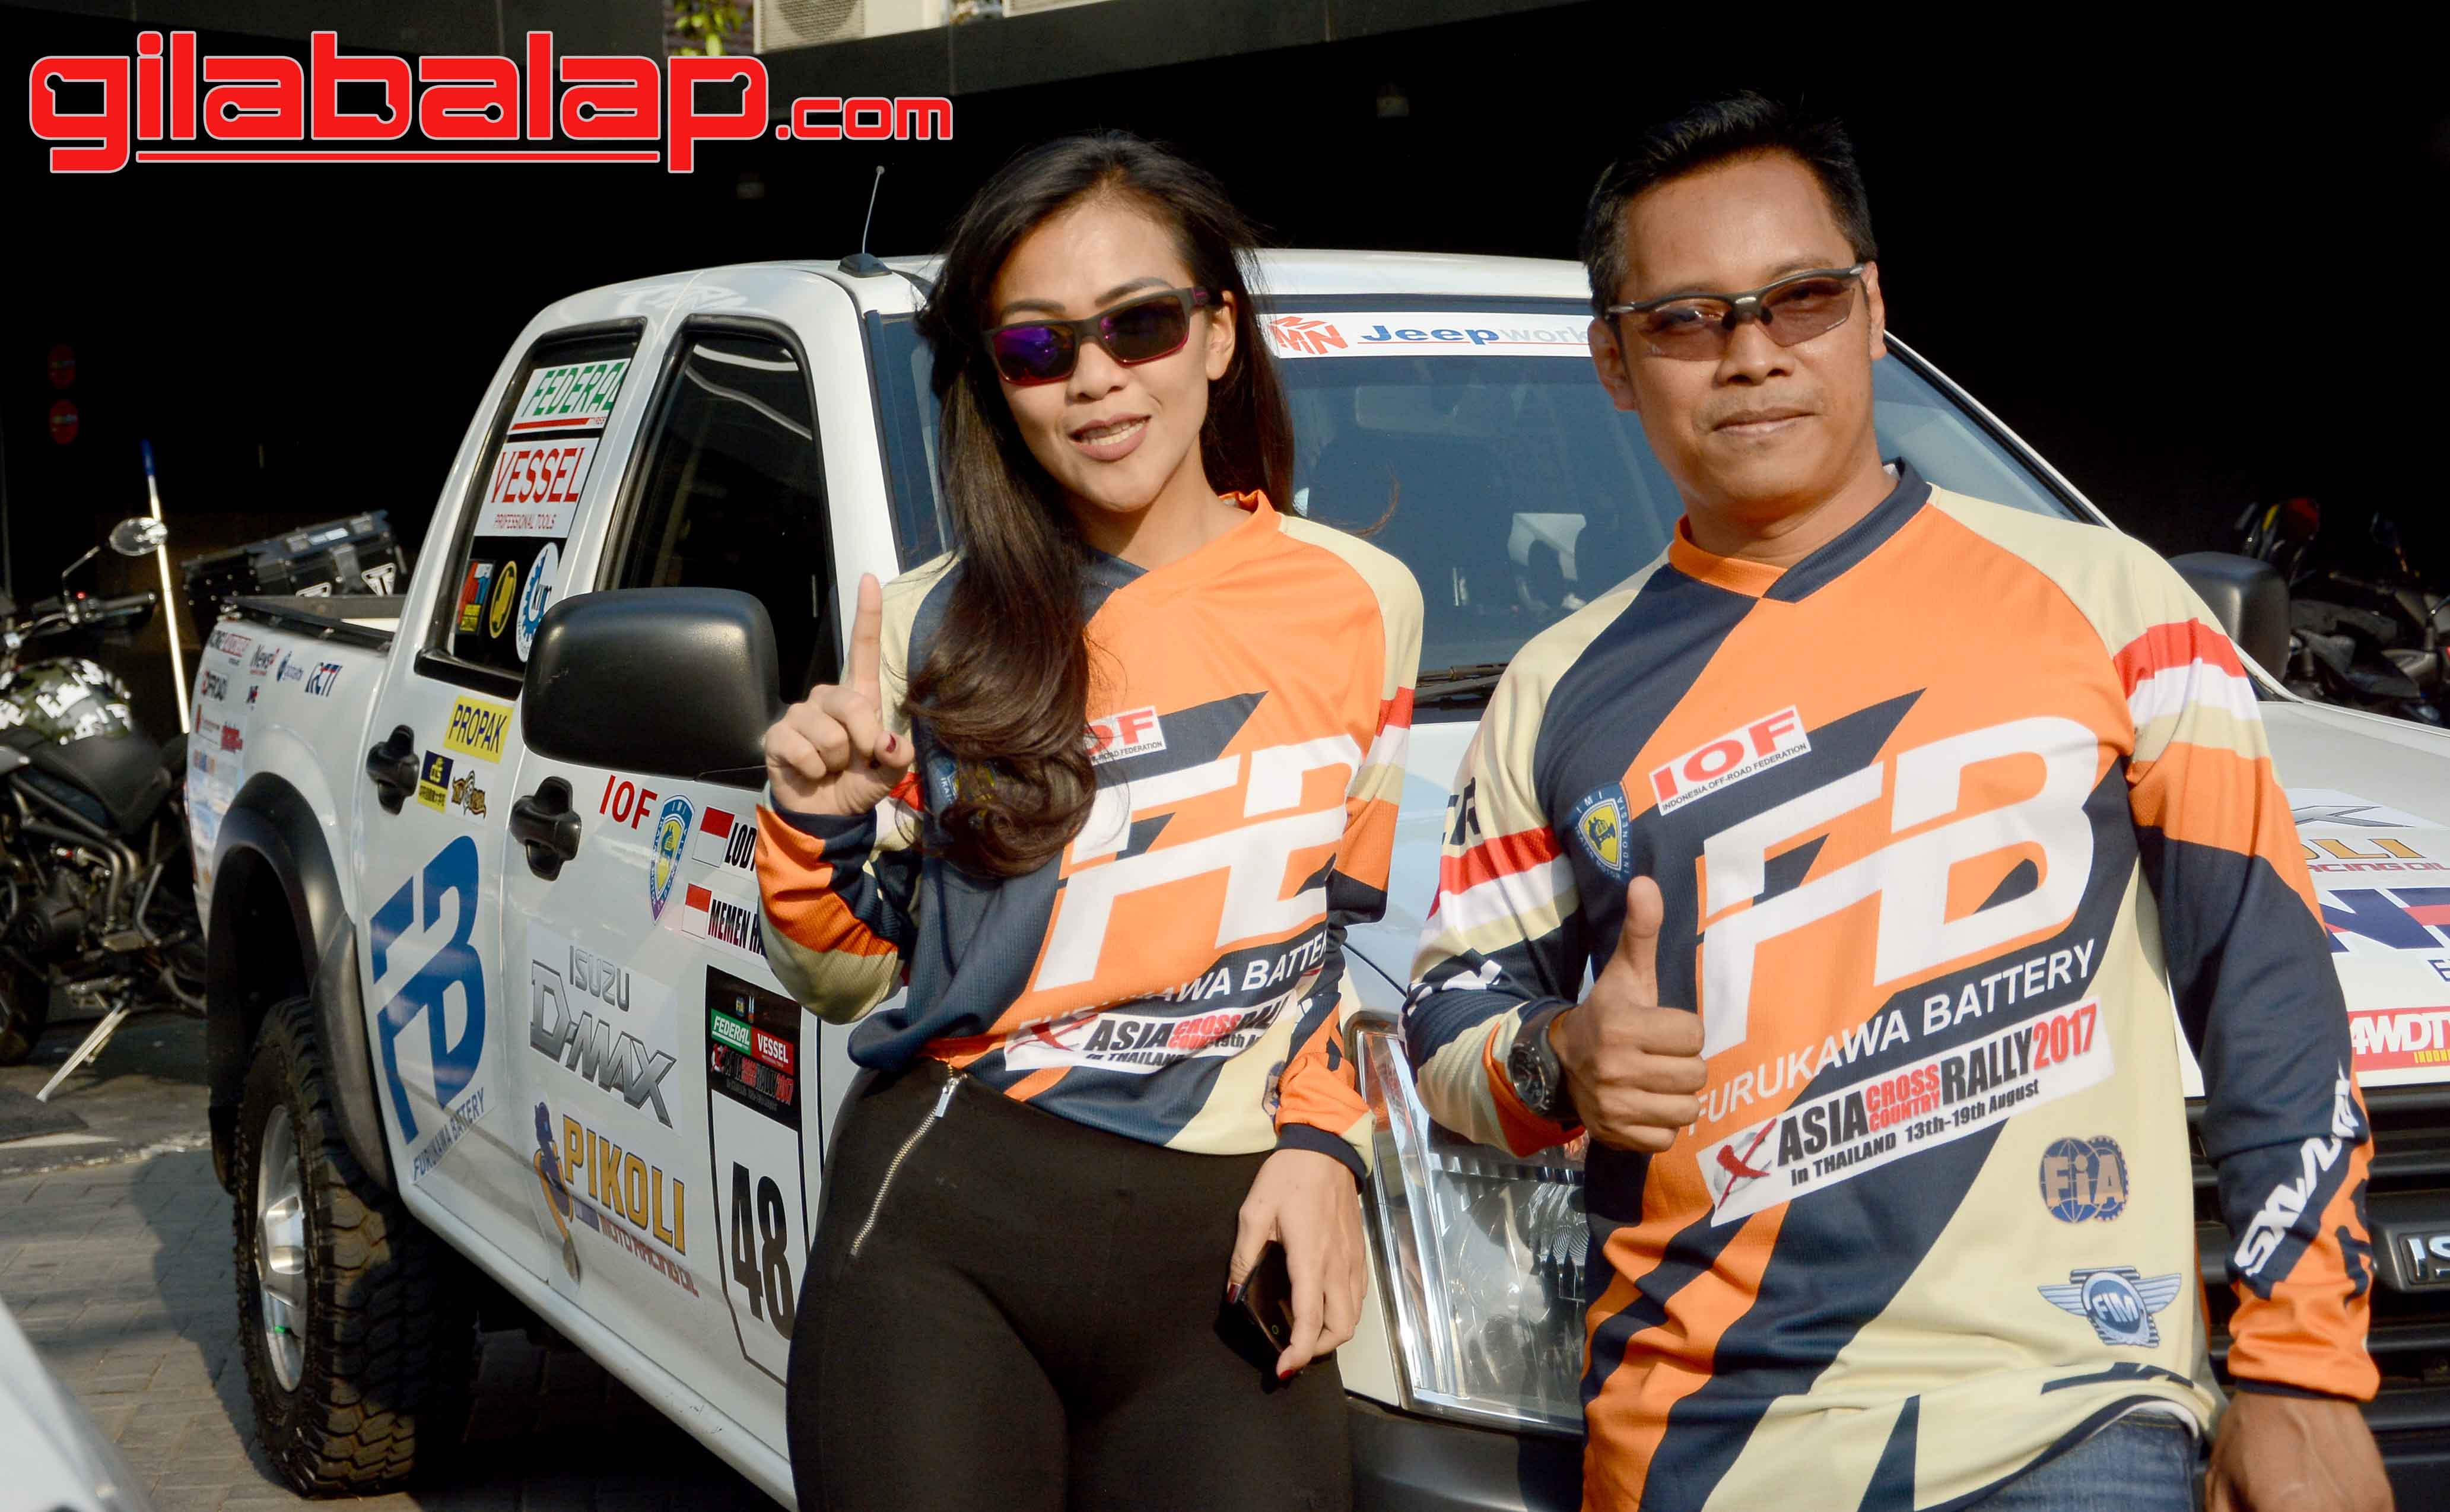 Furukawa Battery Indonesia Team